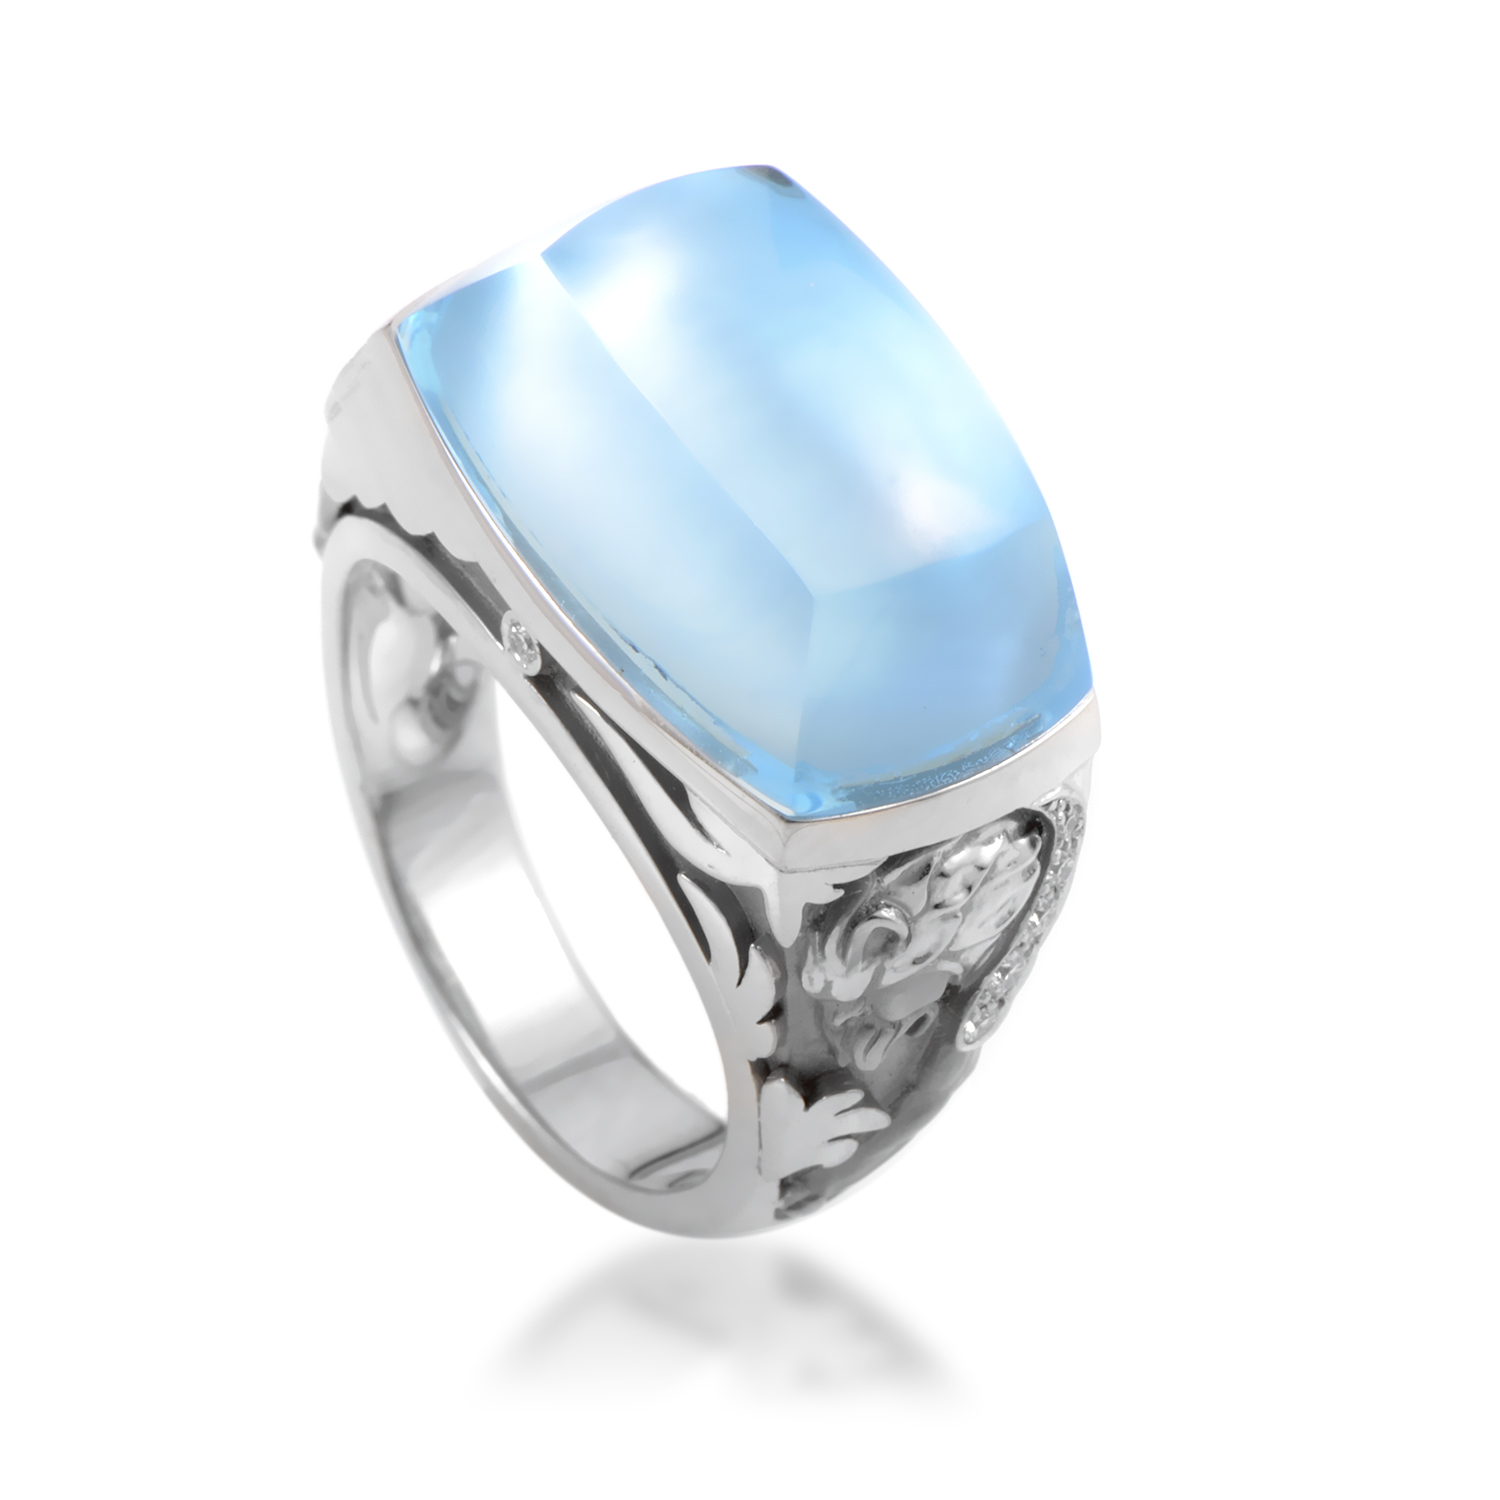 Babylon Women's 18K White Gold Diamond & Topaz Mother of Pearl Ring